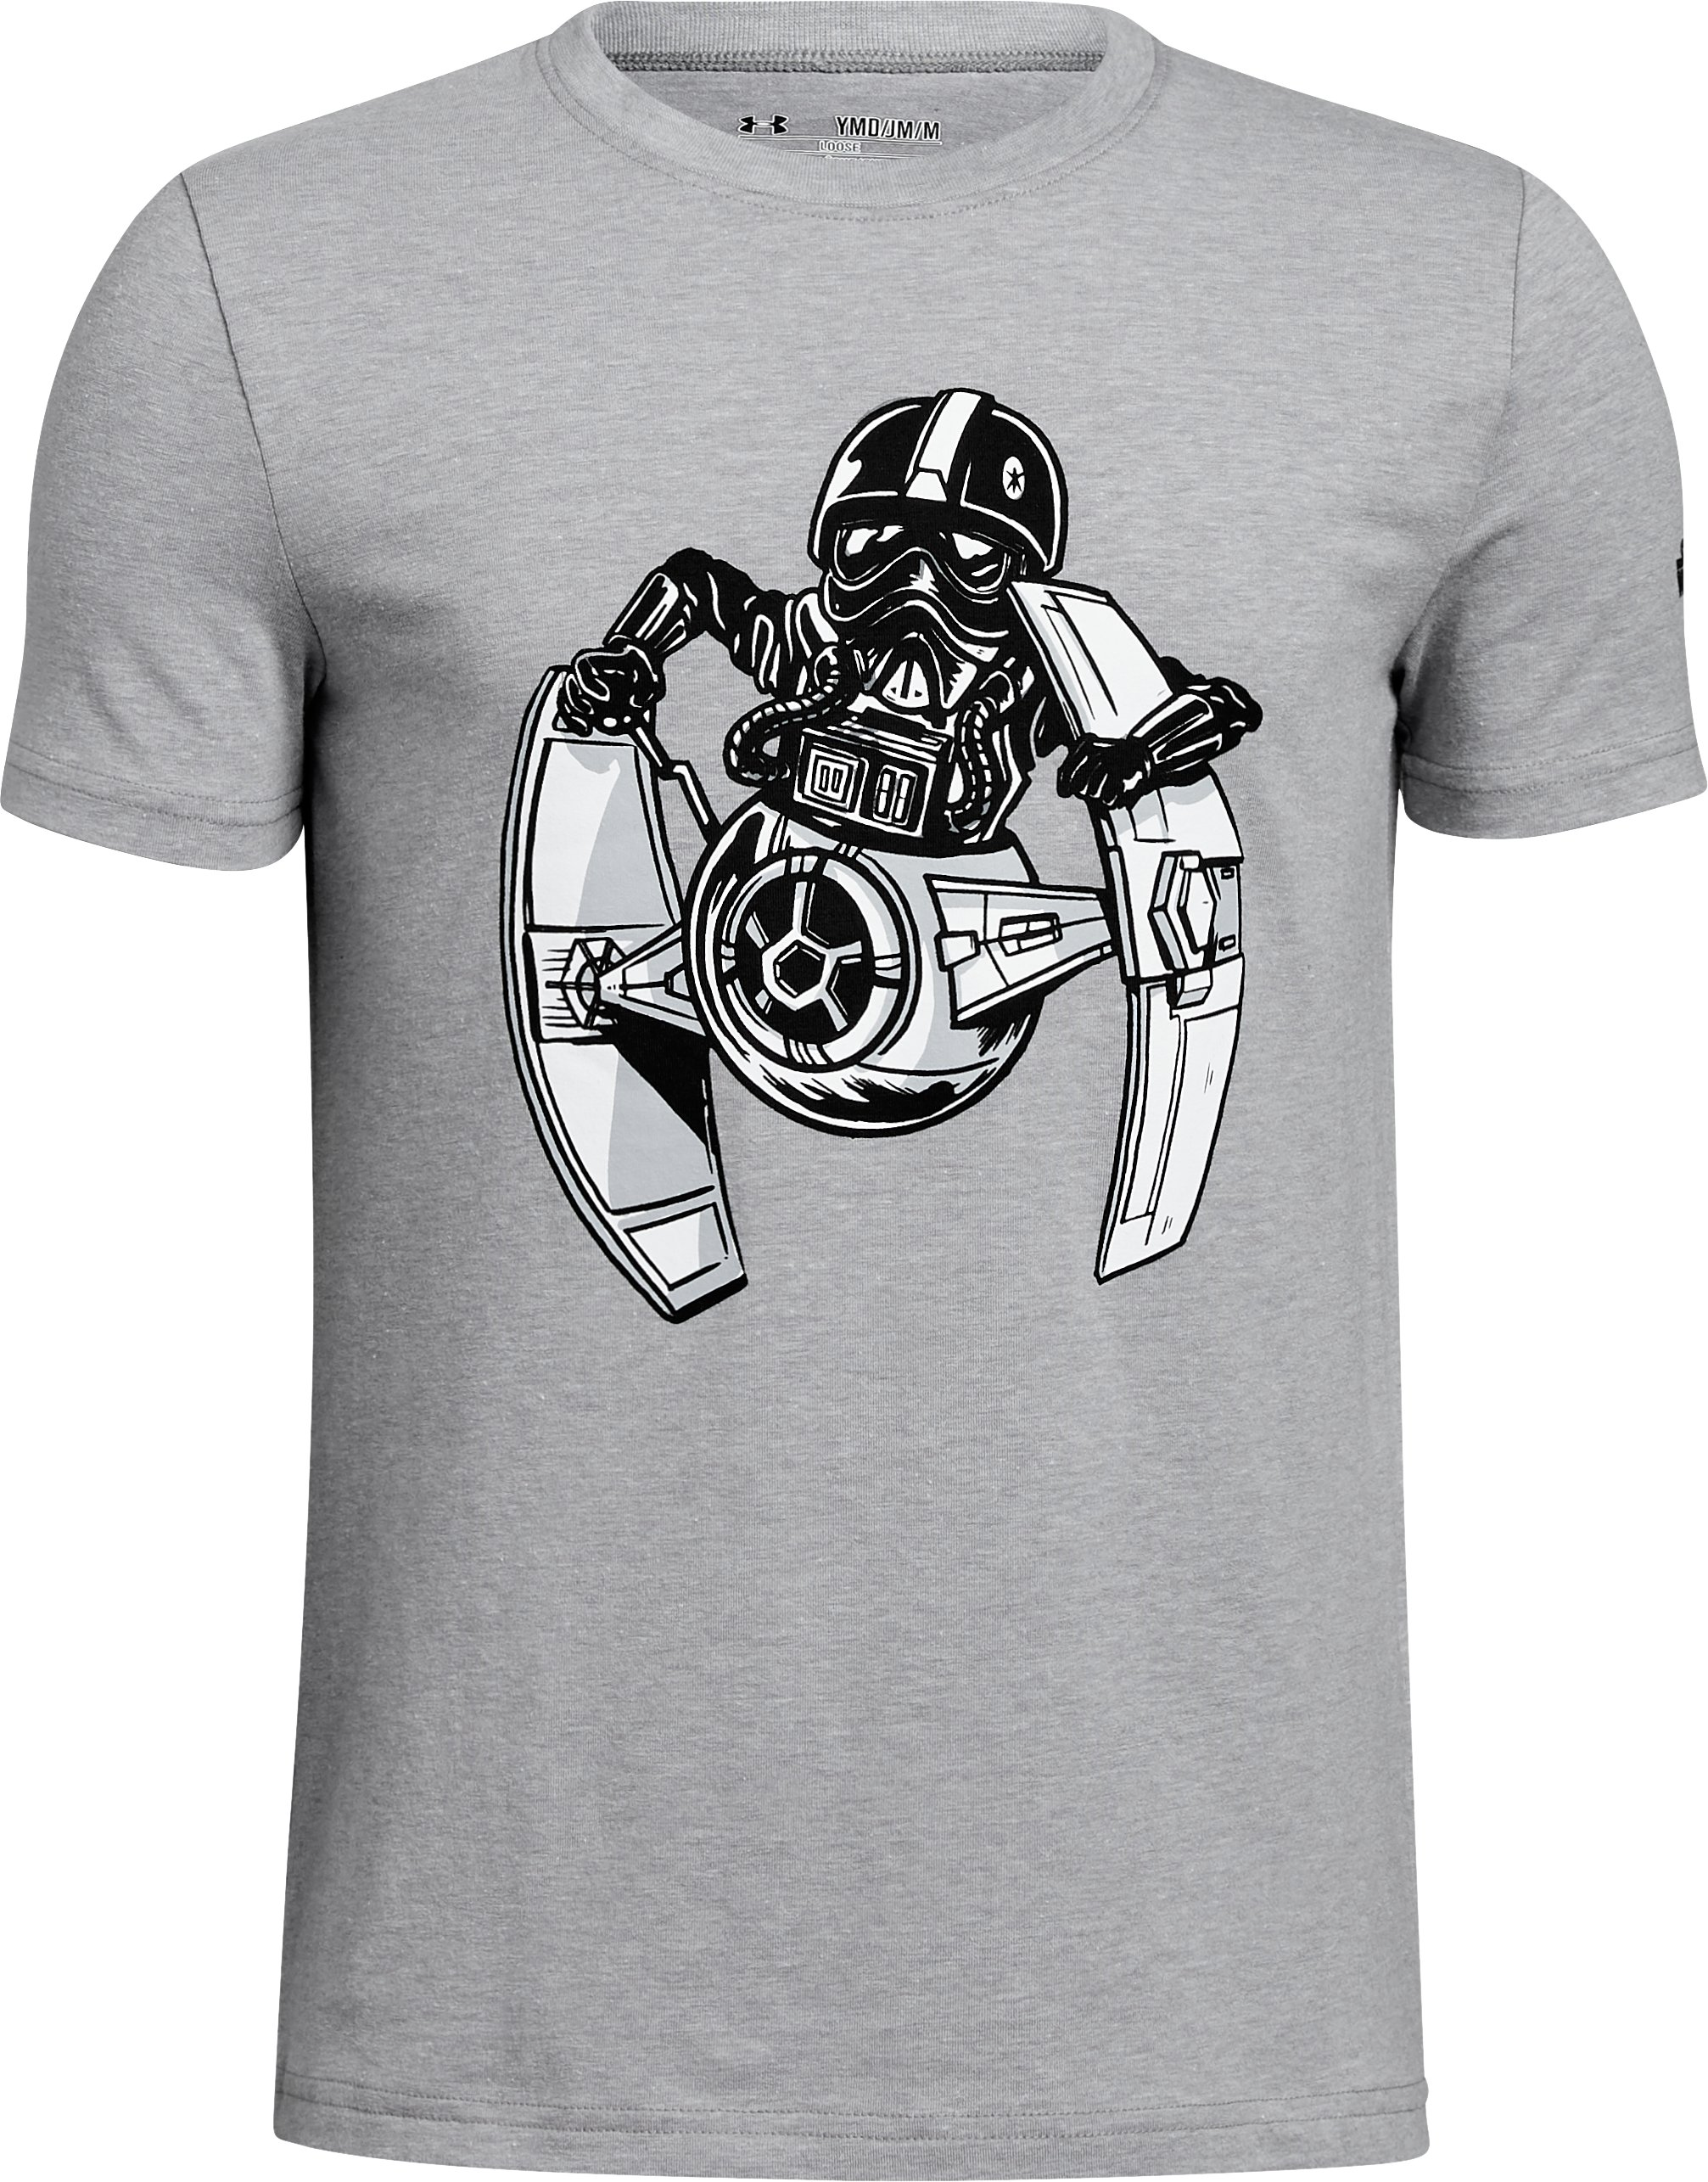 Boys' Star Wars UA Tie Pilot T-Shirt, STEEL LIGHT HEATHER, undefined